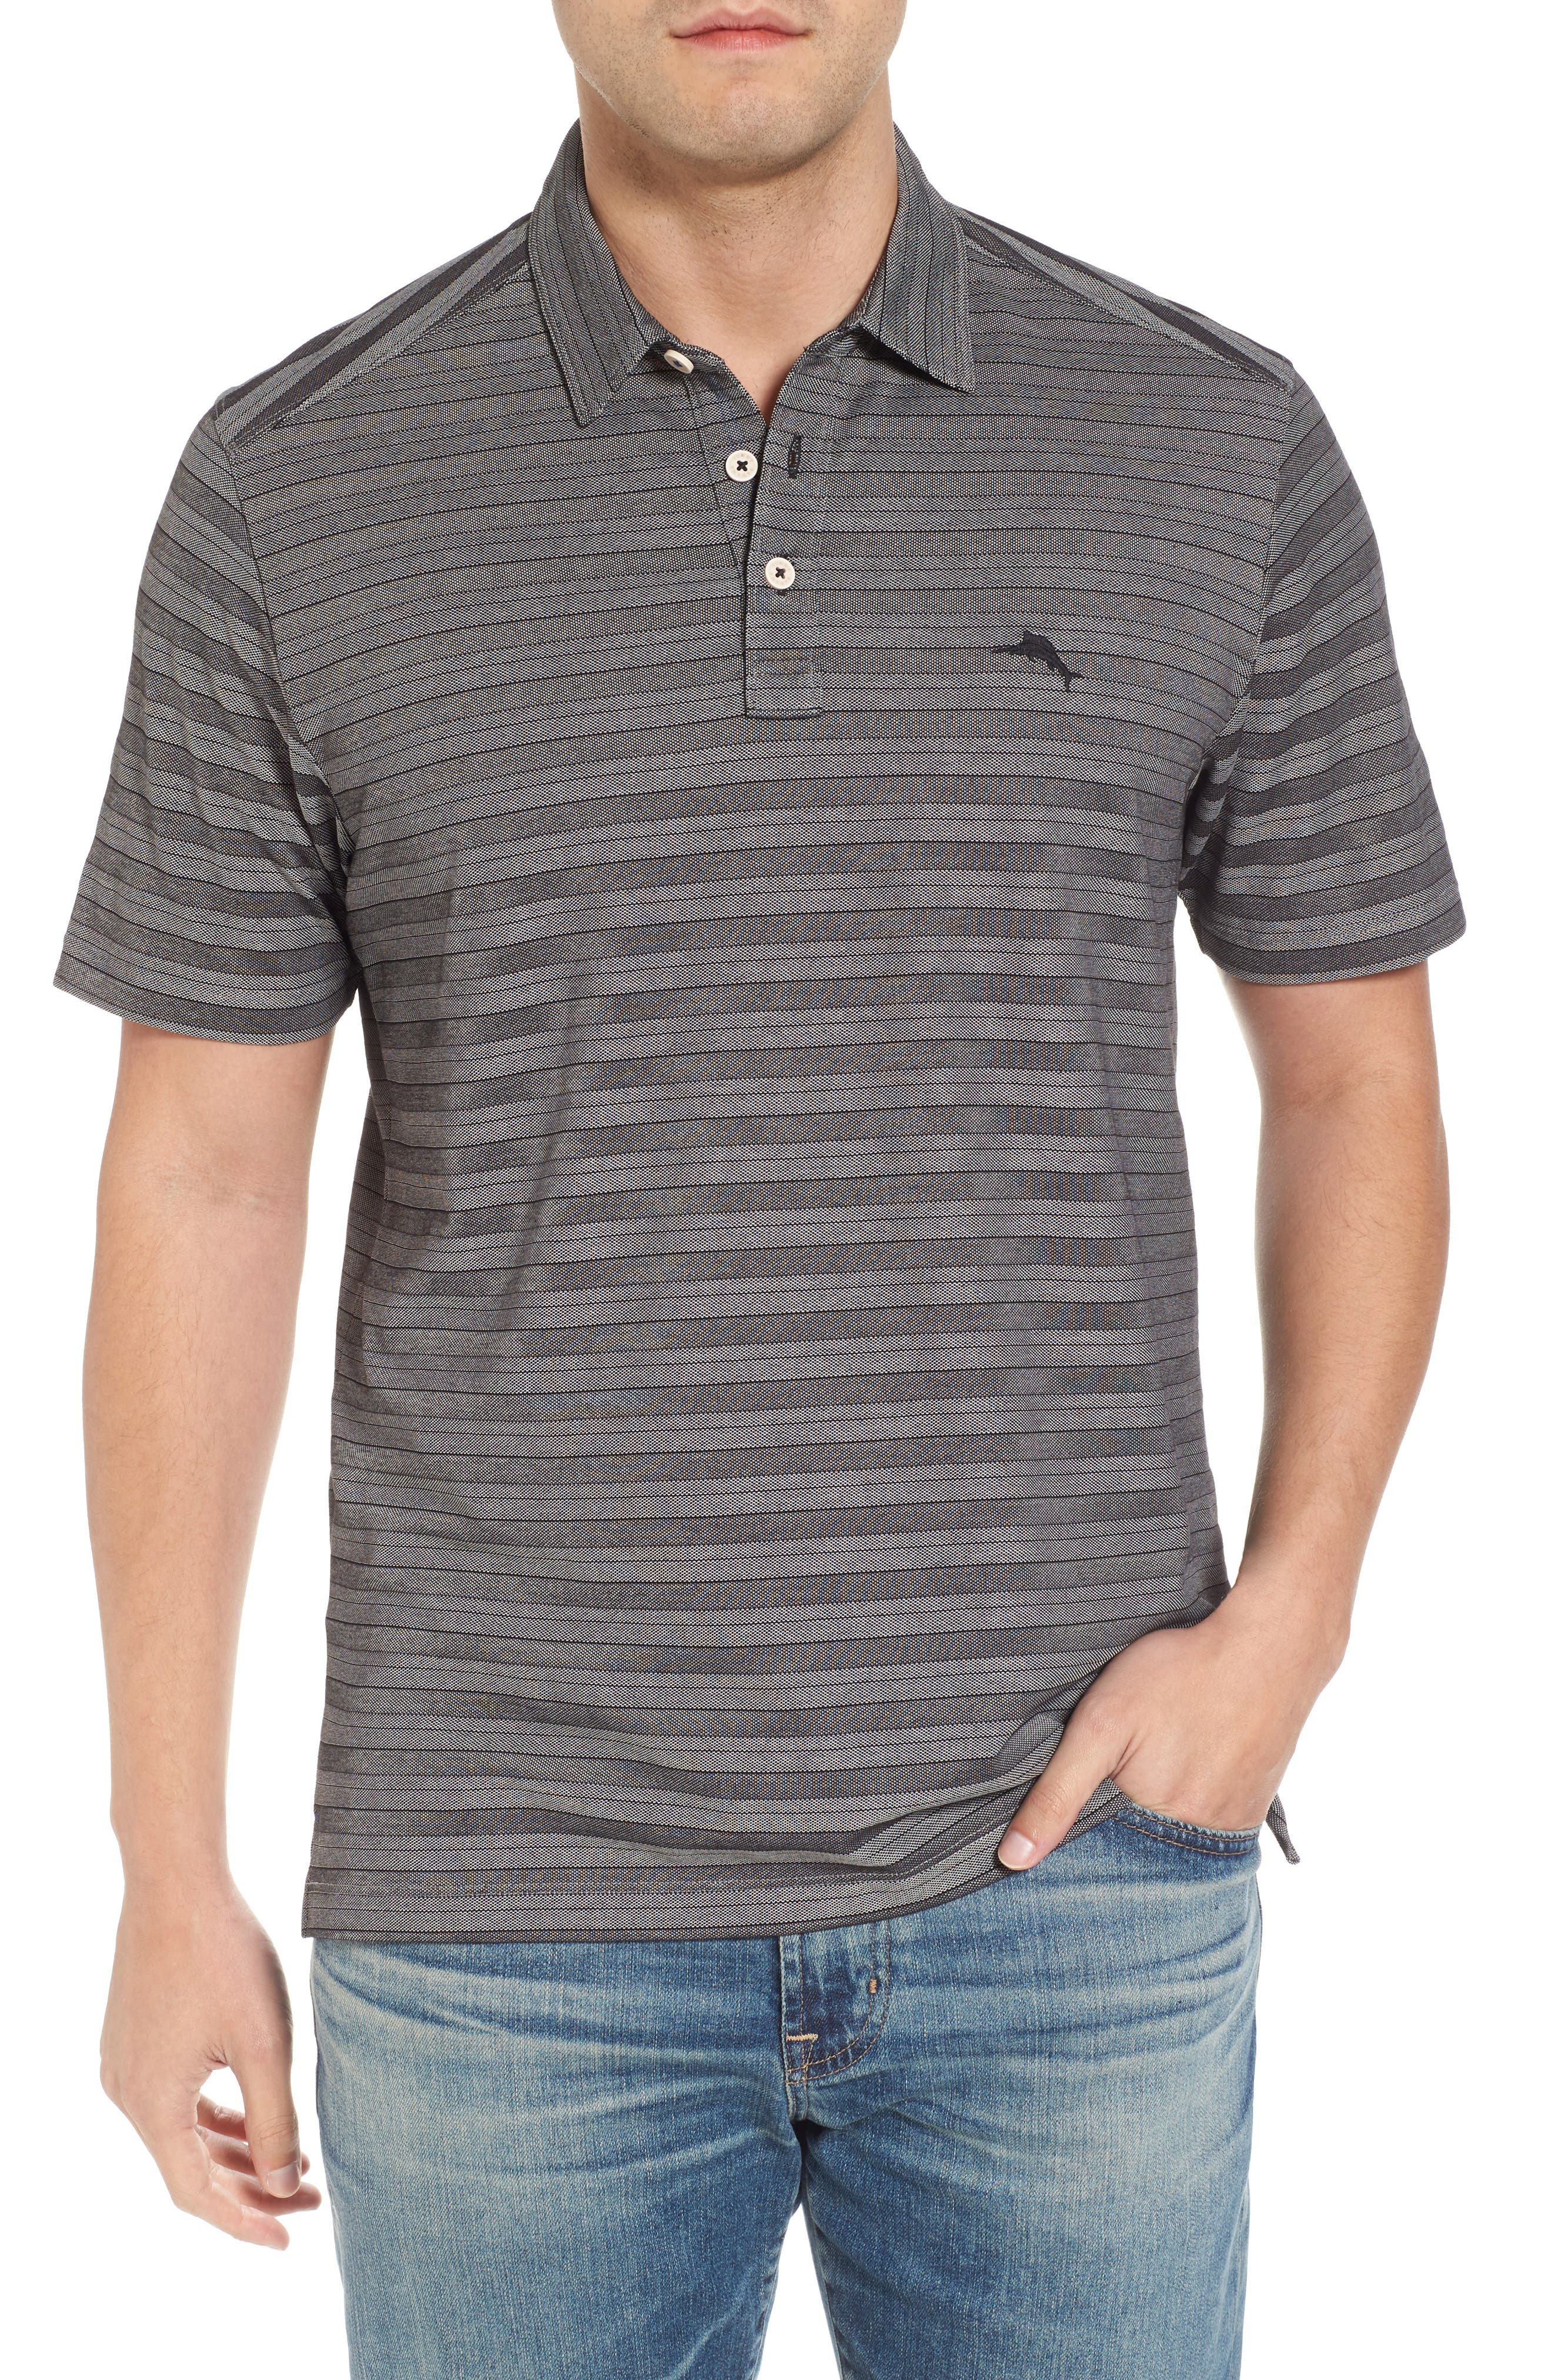 Tropicool Tides Stripe Polo,                         Main,                         color, 001